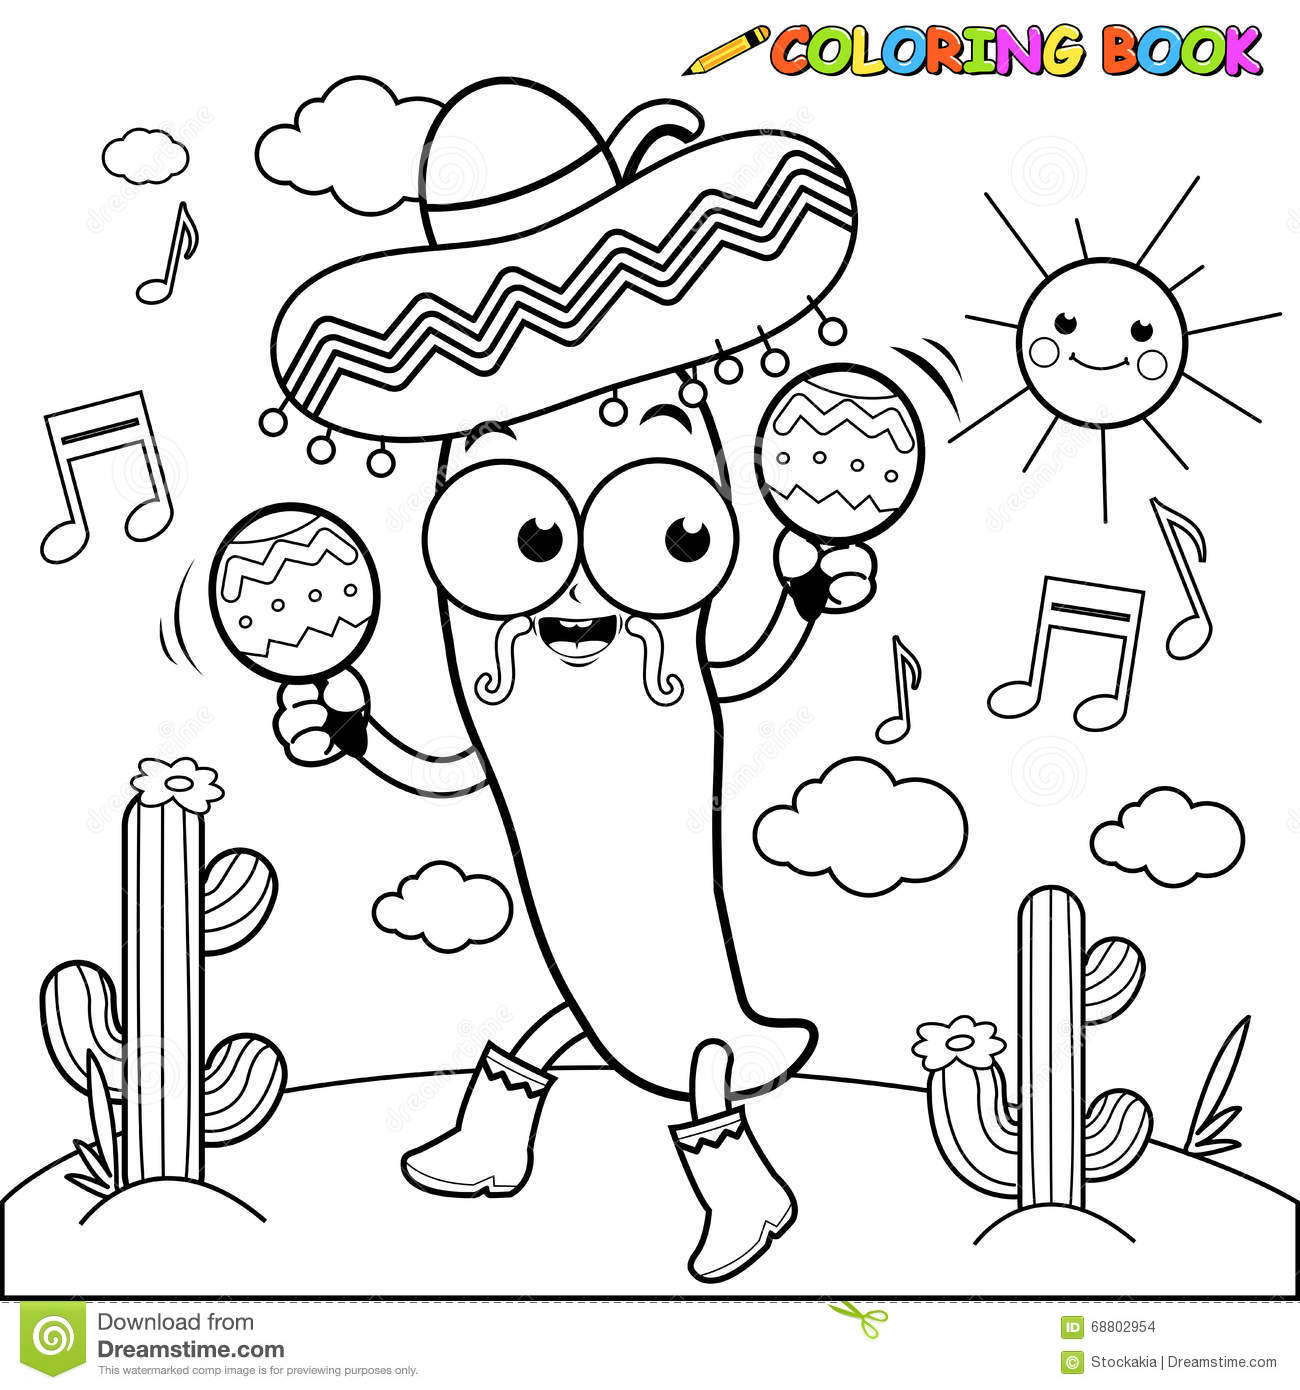 mariachi chilli pepper with maracas coloring page